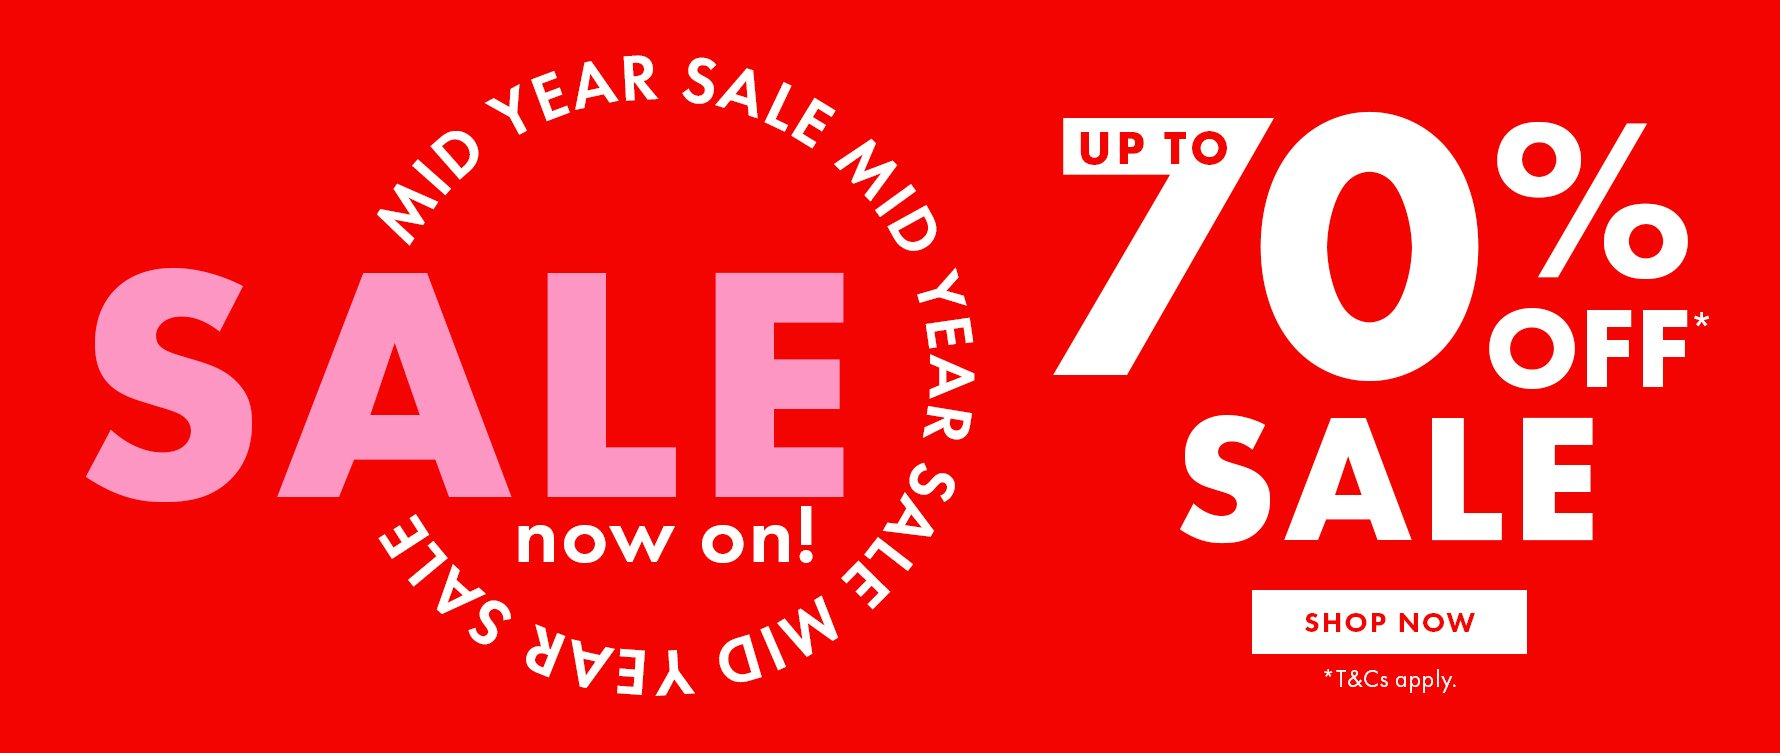 Up to 70% OFF on sale items